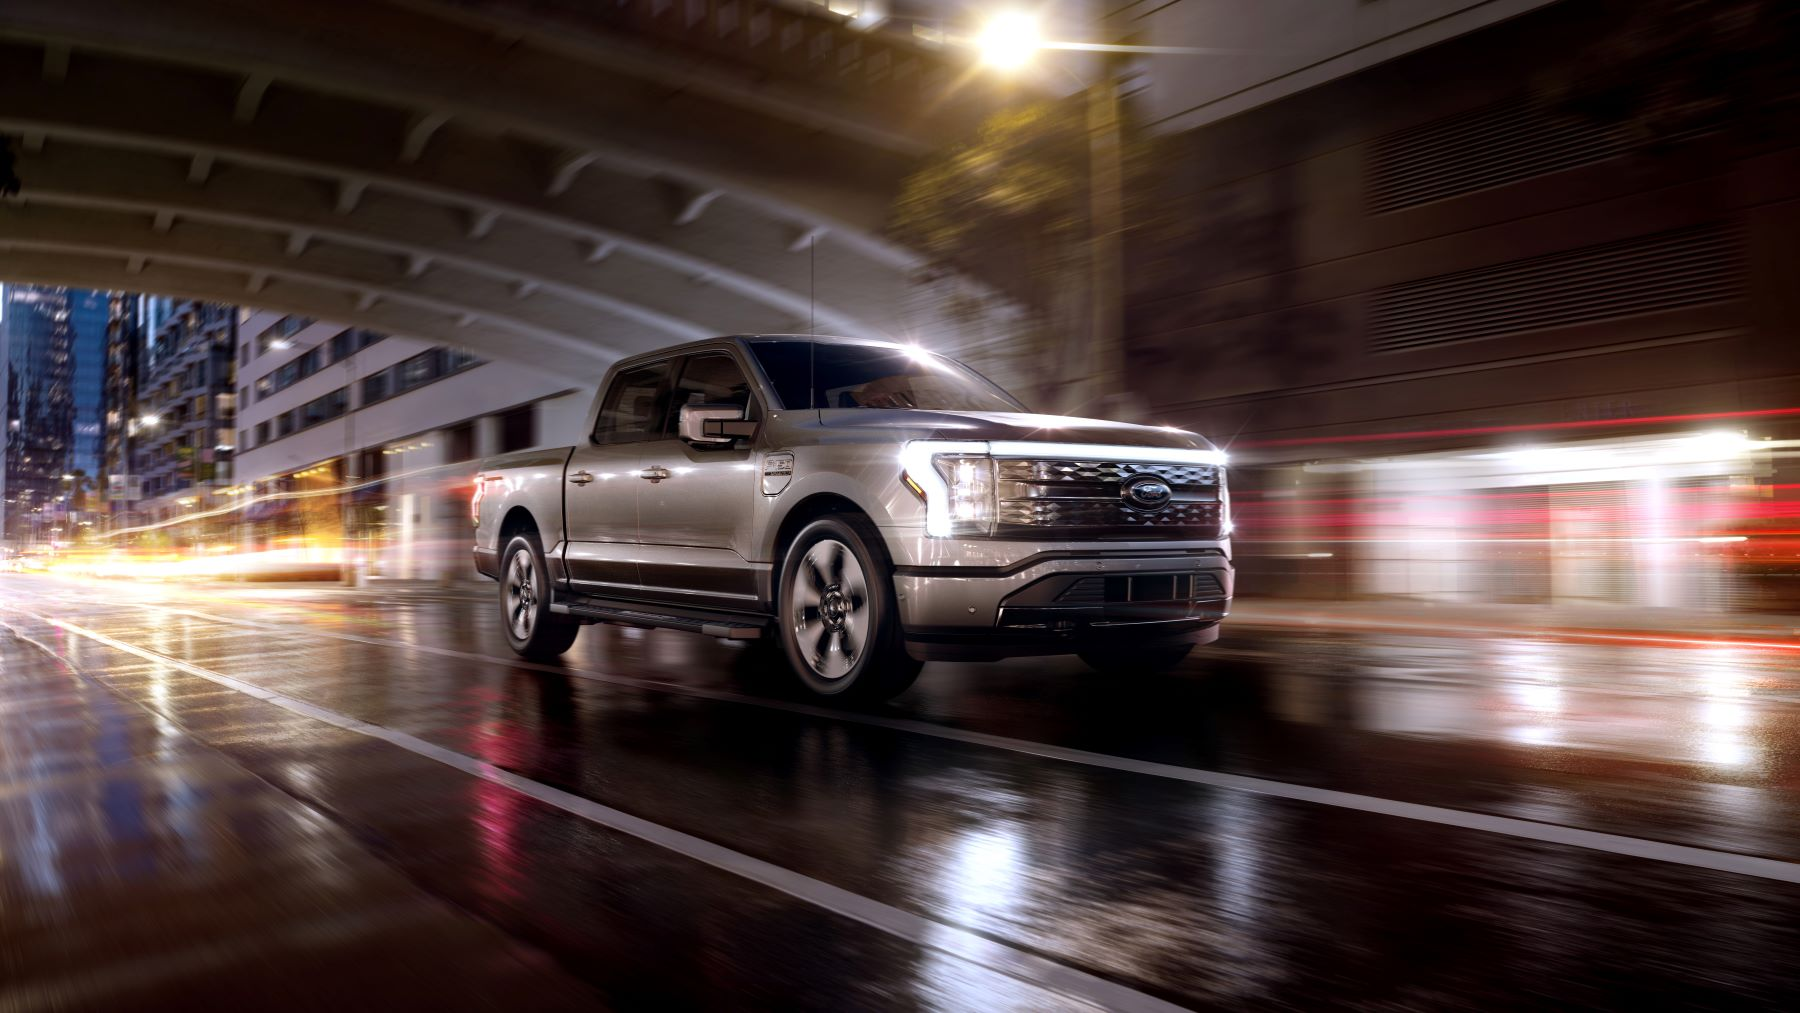 The 2022 Ford F-150 Lightning electric pickup truck driving through a city at night